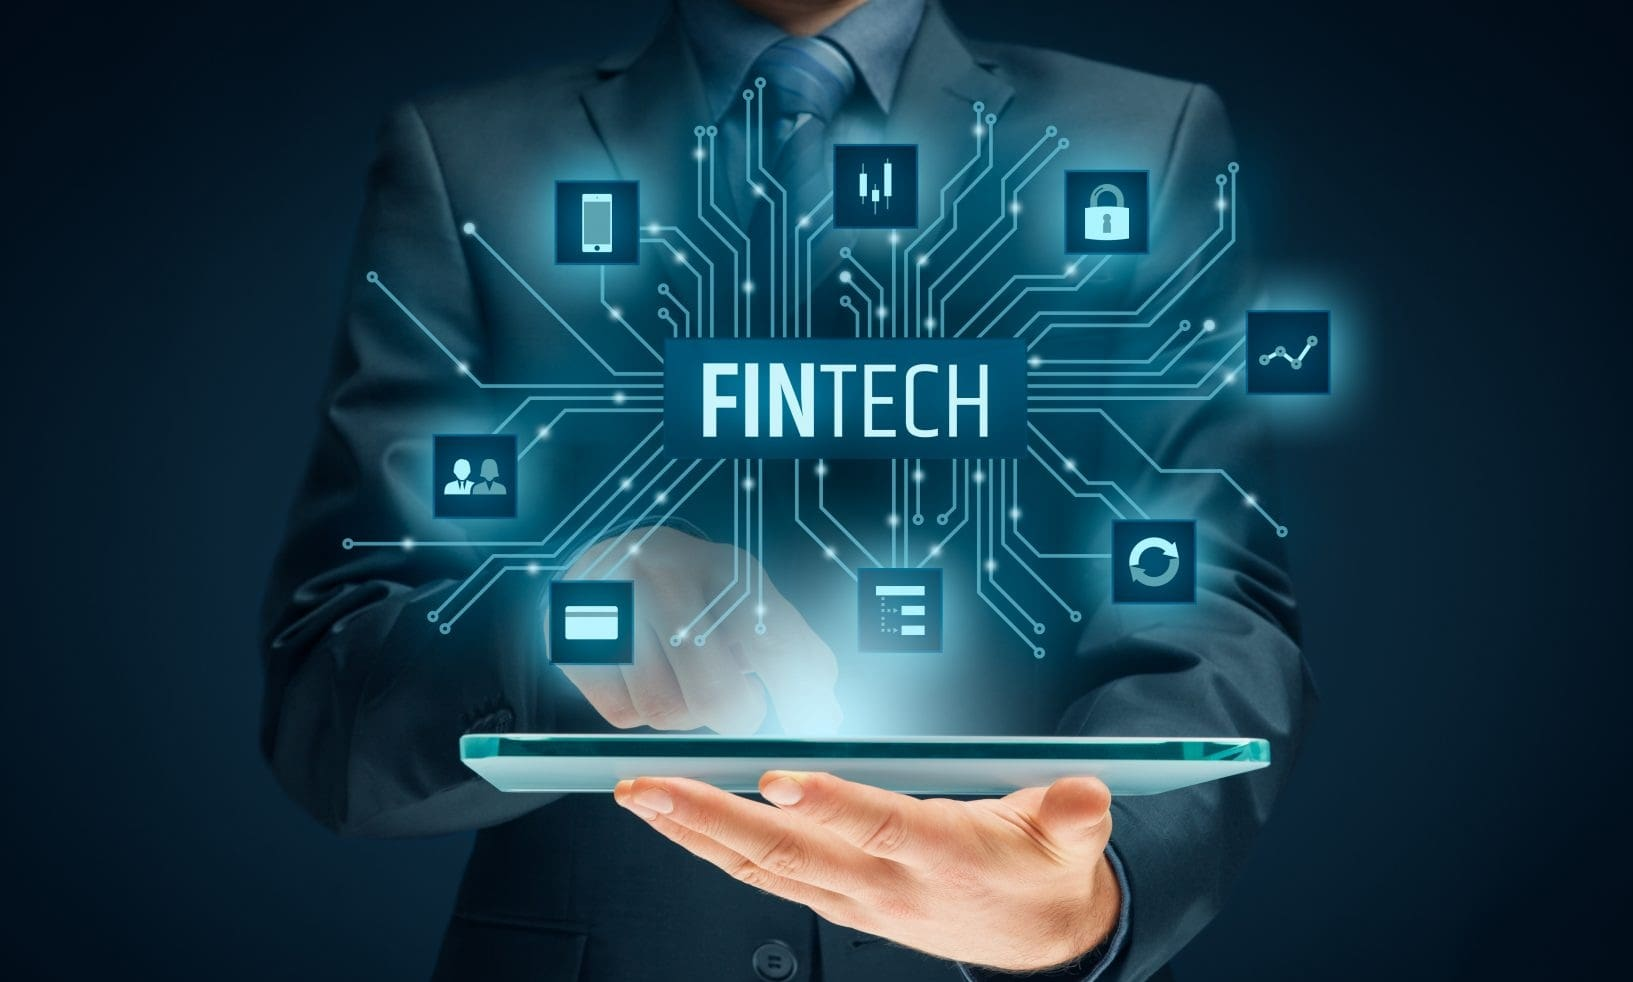 Fintech - A Financial Technology